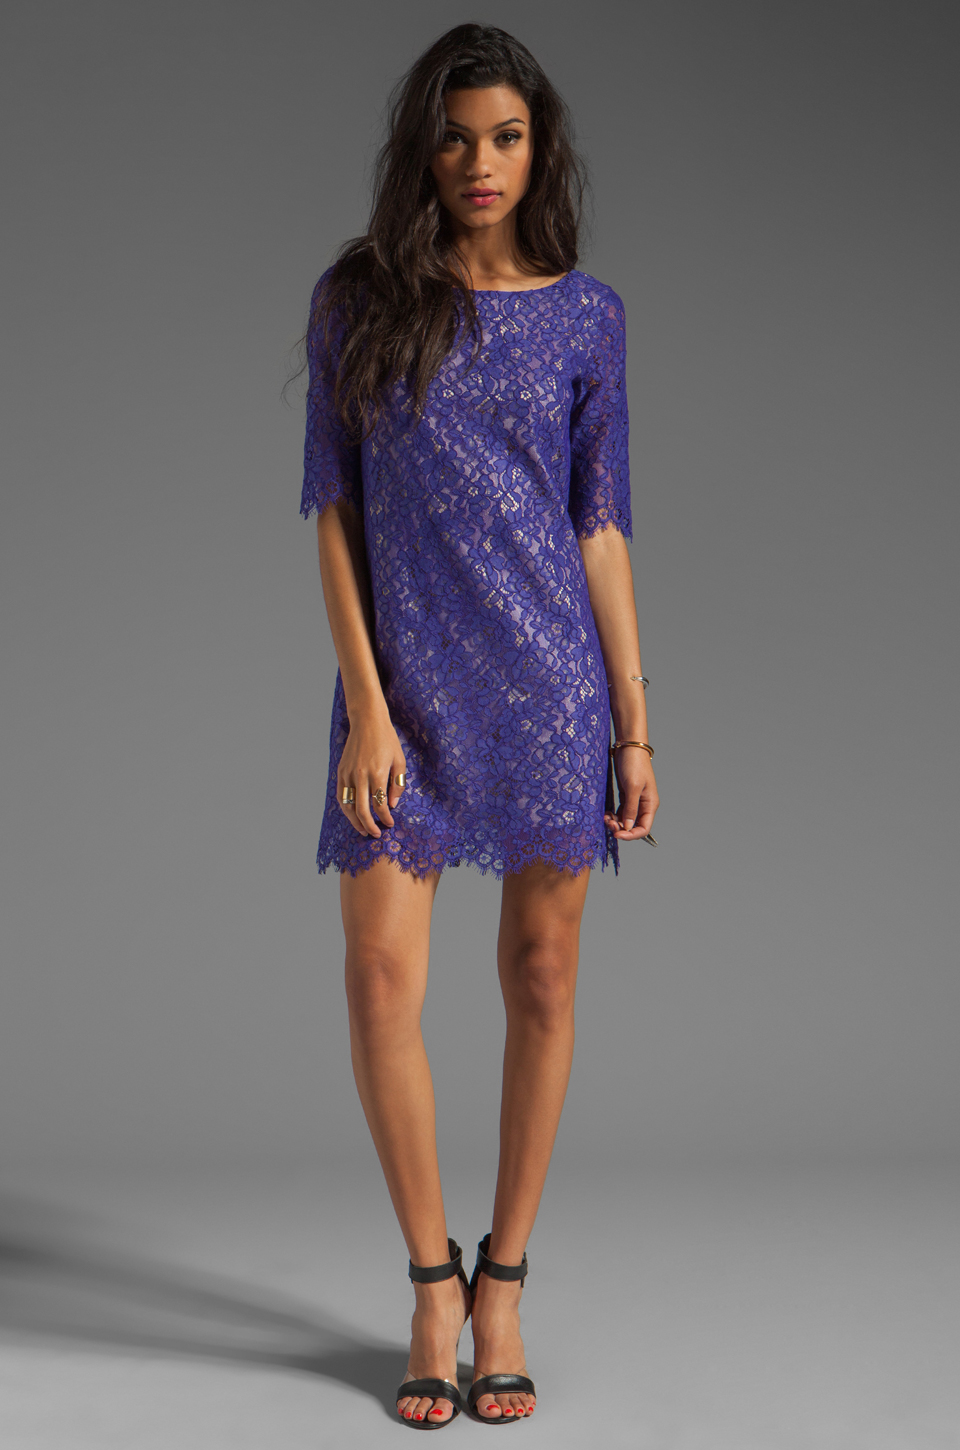 Shoshanna Lace Lisa Shift Dress in Amethyst